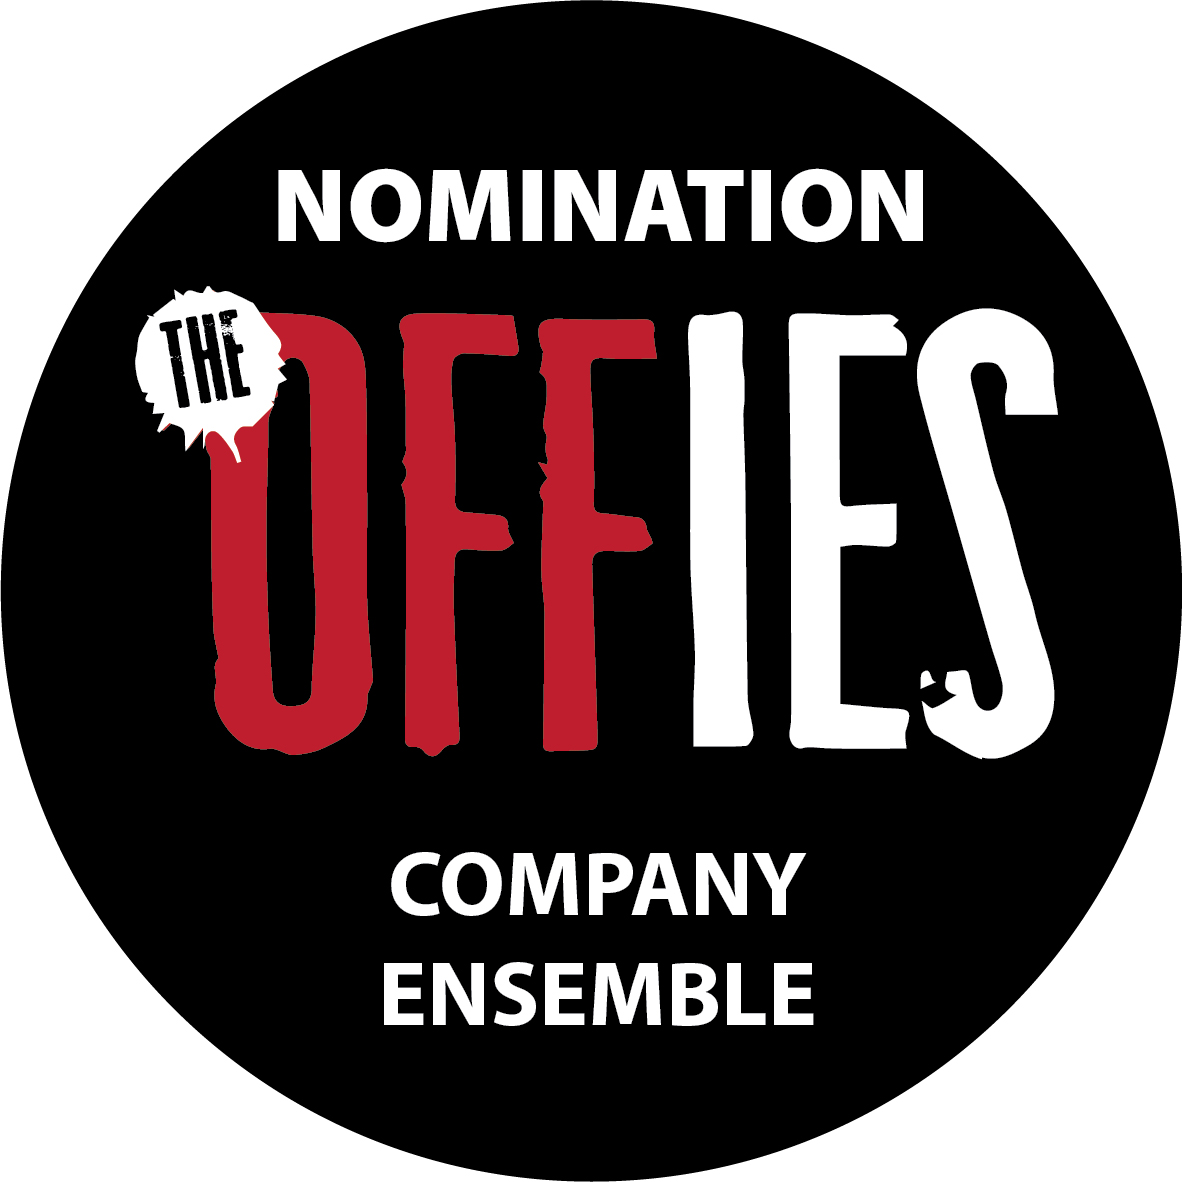 offies ensemble company.jpg